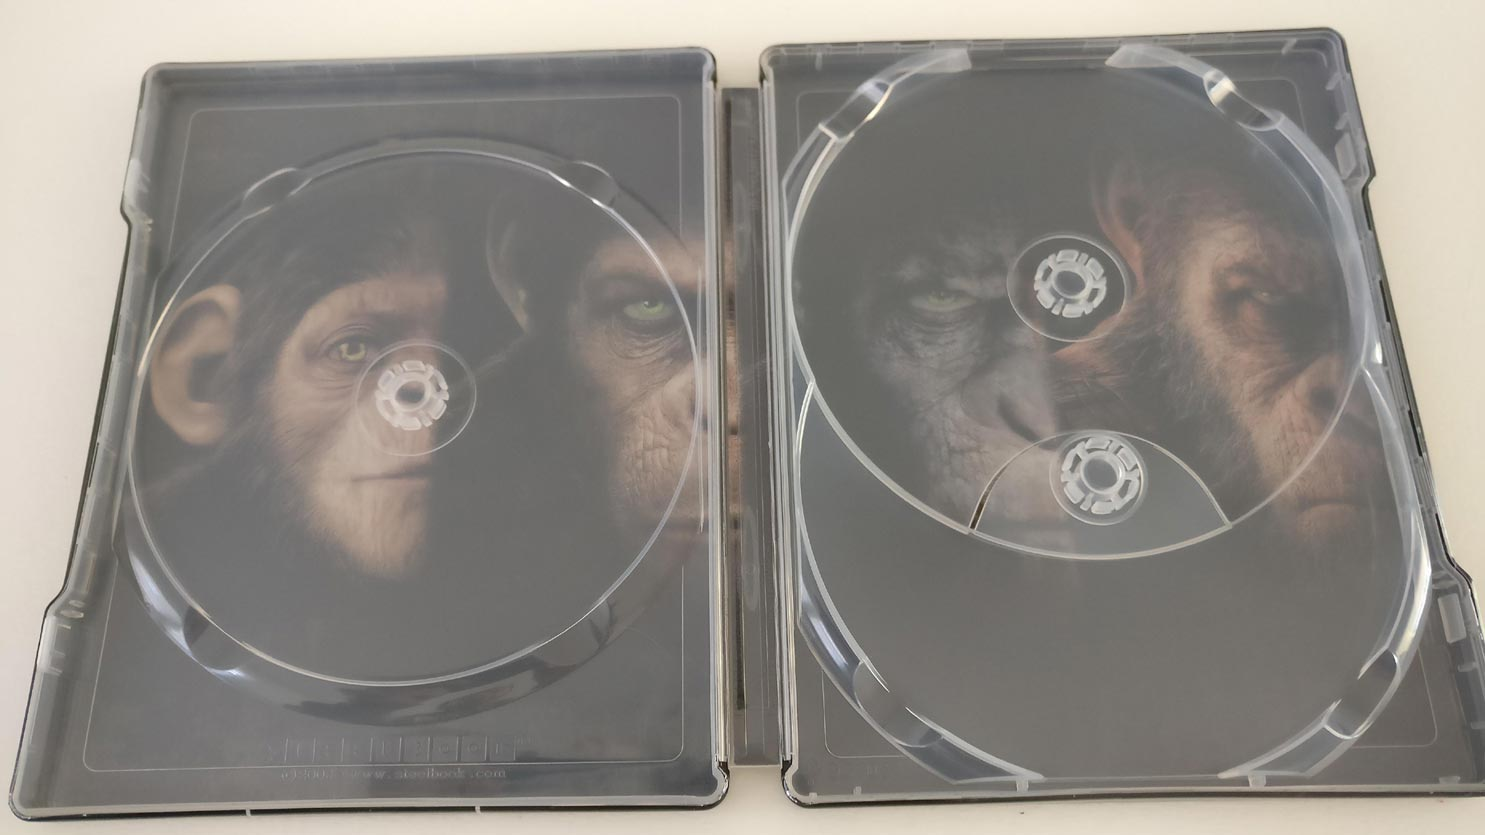 Planet-of-the-apes-trilogy-steelbook-2